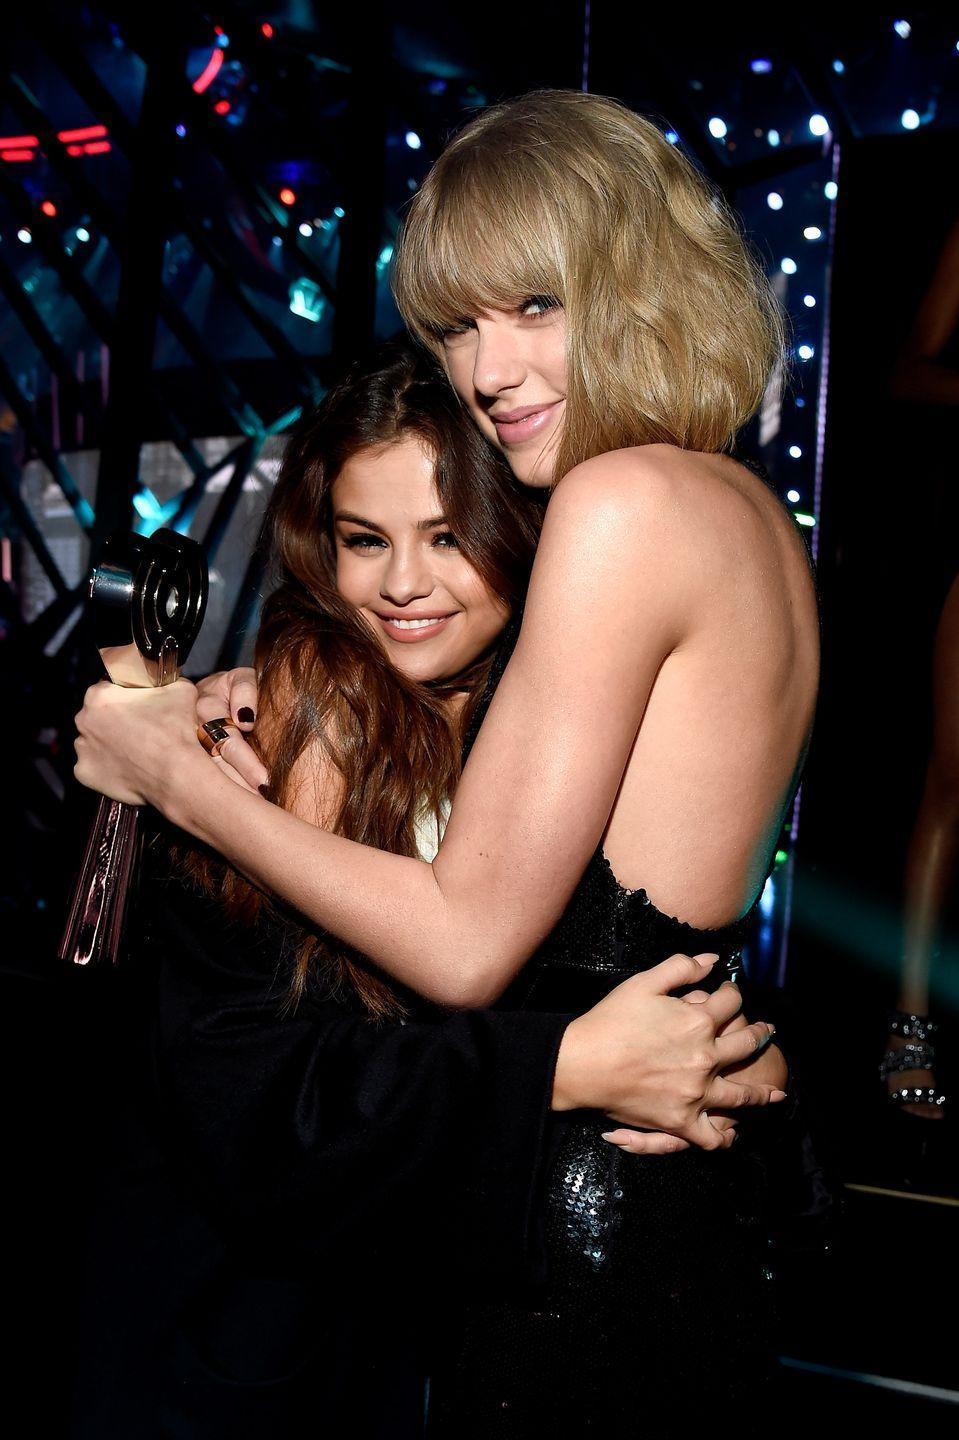 """<p>""""Taylor has such a beautiful way of bringing people together. That was good for me, because the more I started working, the more uncomfortable I was. I wouldn't trust people, and Taylor has a way of stripping down everything and just getting down to being human. I love that."""" — Selena Gomez, <em><a href=""""https://www.flare.com/fashion/november-cover-star-selena-gomez-i-feel-in-control/"""" rel=""""nofollow noopener"""" target=""""_blank"""" data-ylk=""""slk:Flare Magazine"""" class=""""link rapid-noclick-resp"""">Flare Magazine</a></em></p><p>""""It's been the longest [friendship] I think either of us had really....longevity is something you really can find very precious and rare in friendships."""" — Taylor Swfit, <em><a href=""""https://www.eonline.com/news/540658/taylor-swift-reveals-why-her-friendship-with-selena-gomez-is-so-special-watch-now"""" rel=""""nofollow noopener"""" target=""""_blank"""" data-ylk=""""slk:E! News"""" class=""""link rapid-noclick-resp"""">E! News</a></em></p>"""